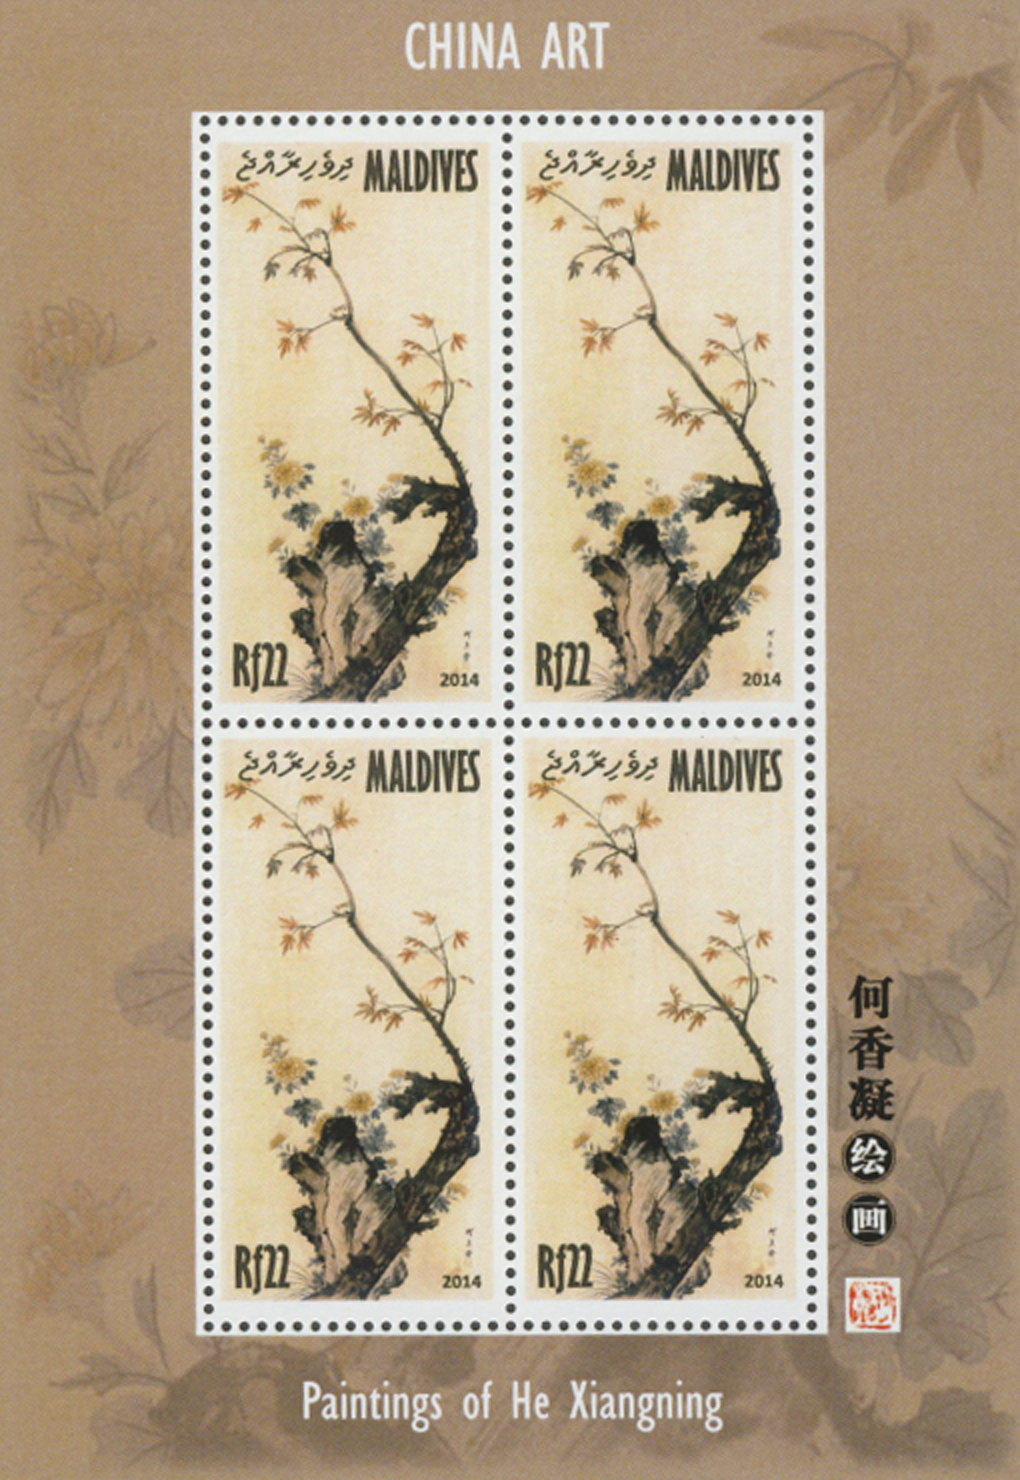 China art - Issue of Maldives postage stamps